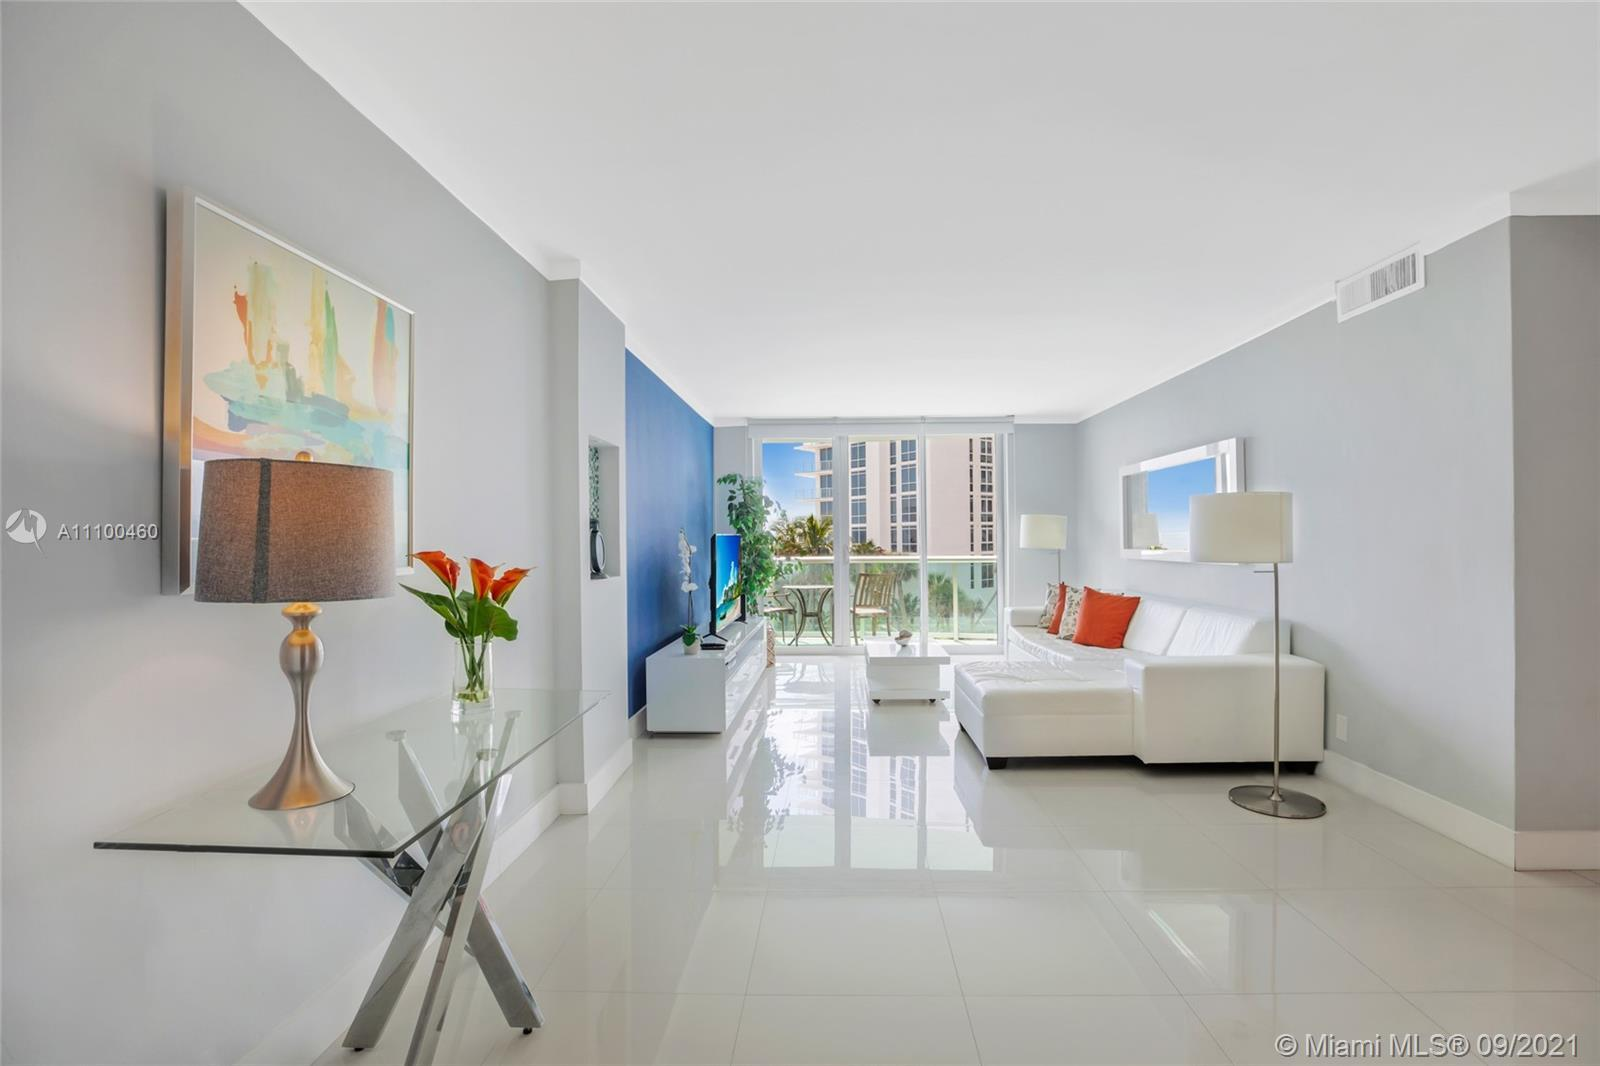 BEST CONDO TO LIVE AND ENJOY 2/1/1 AT HOLLYWOOD BEACH  OK FOR SHORT TERM RENTAL. ALL REMODELED CON